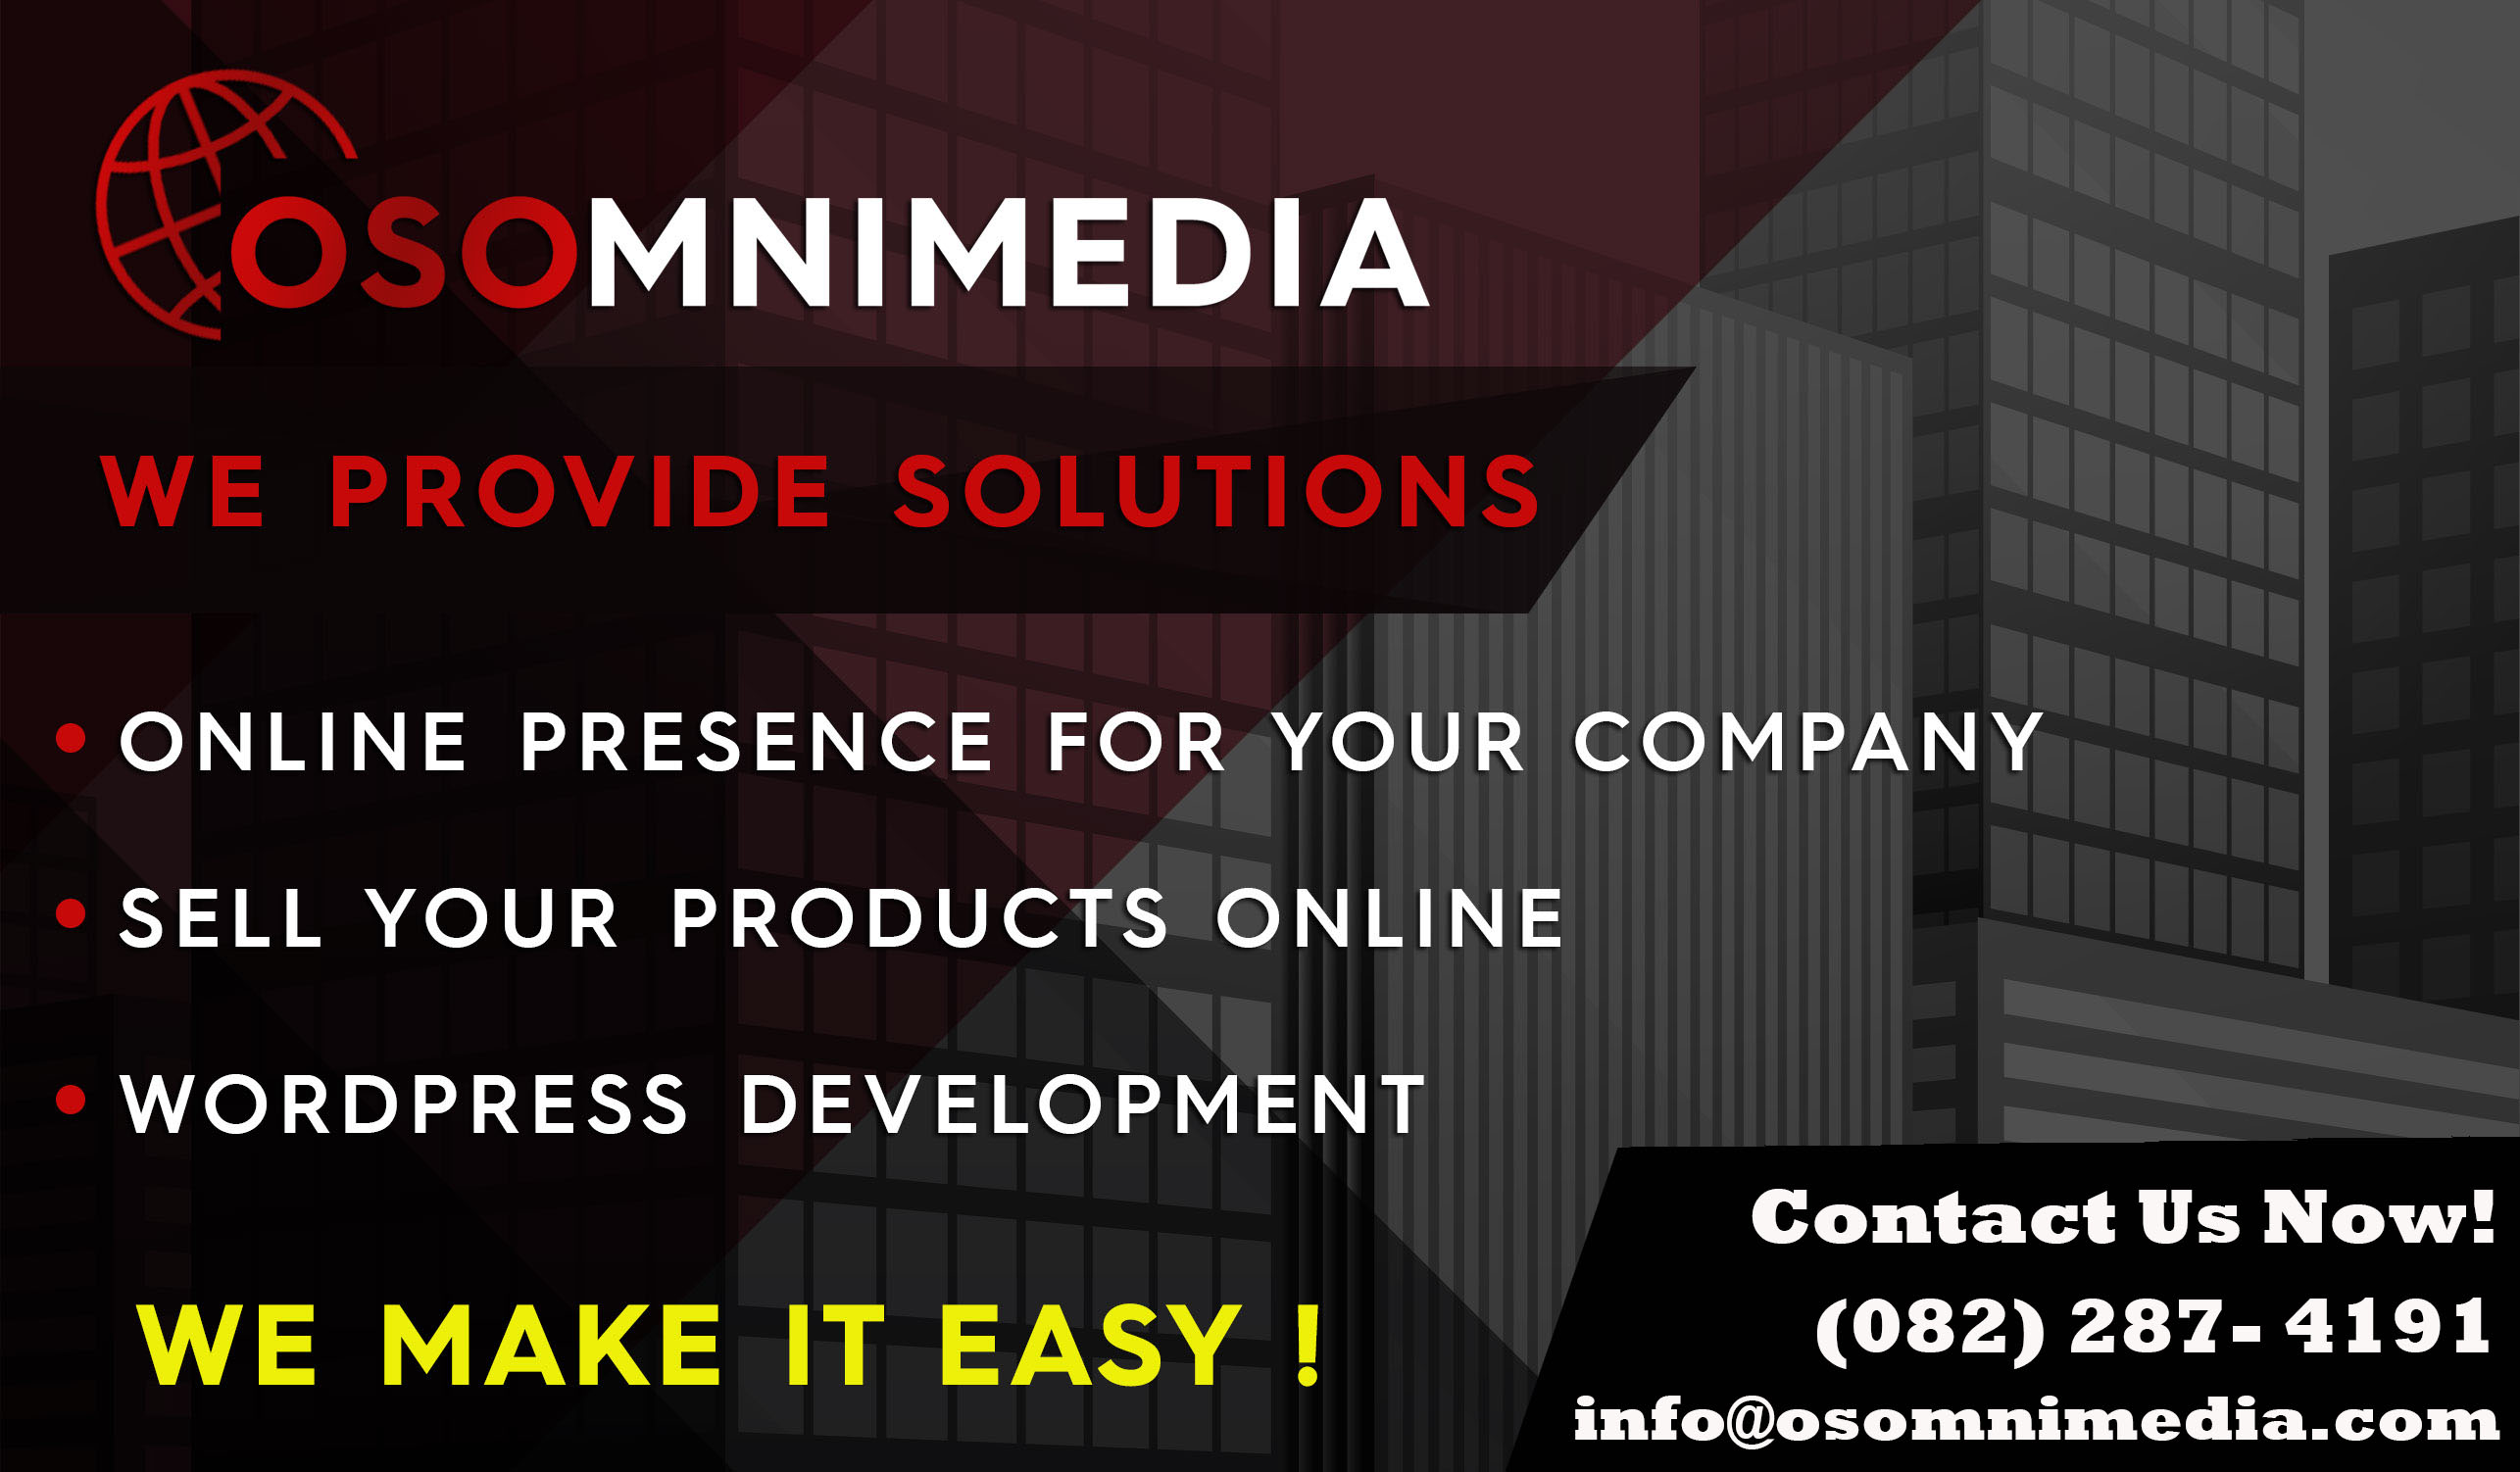 OSOMniMedia E-commece and WordPress Website Packages